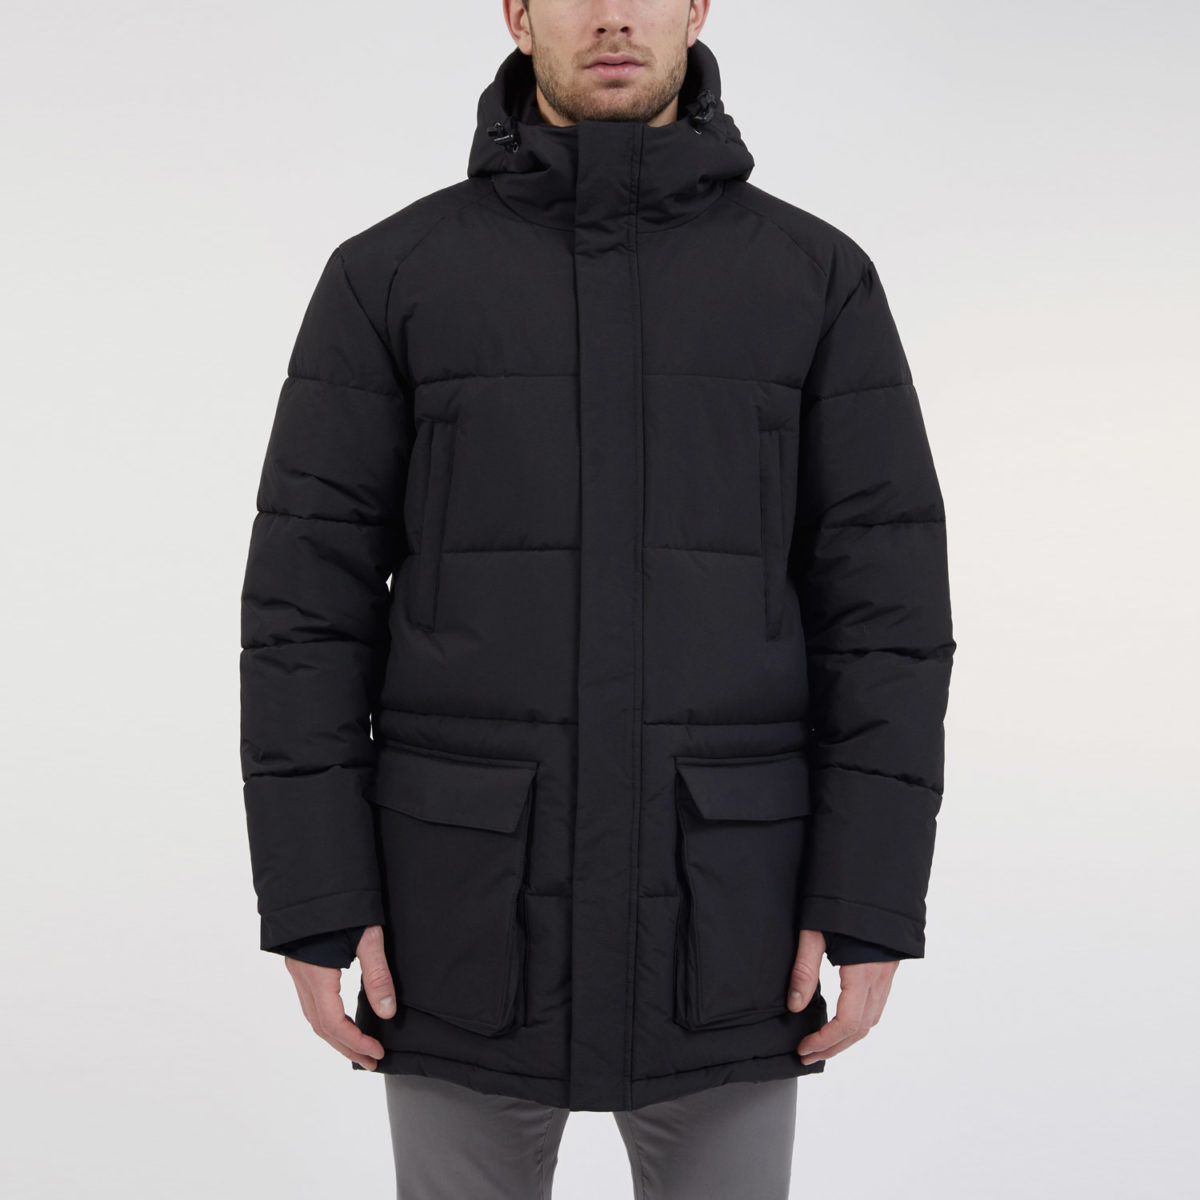 ecoalf vegan jacket samoens black